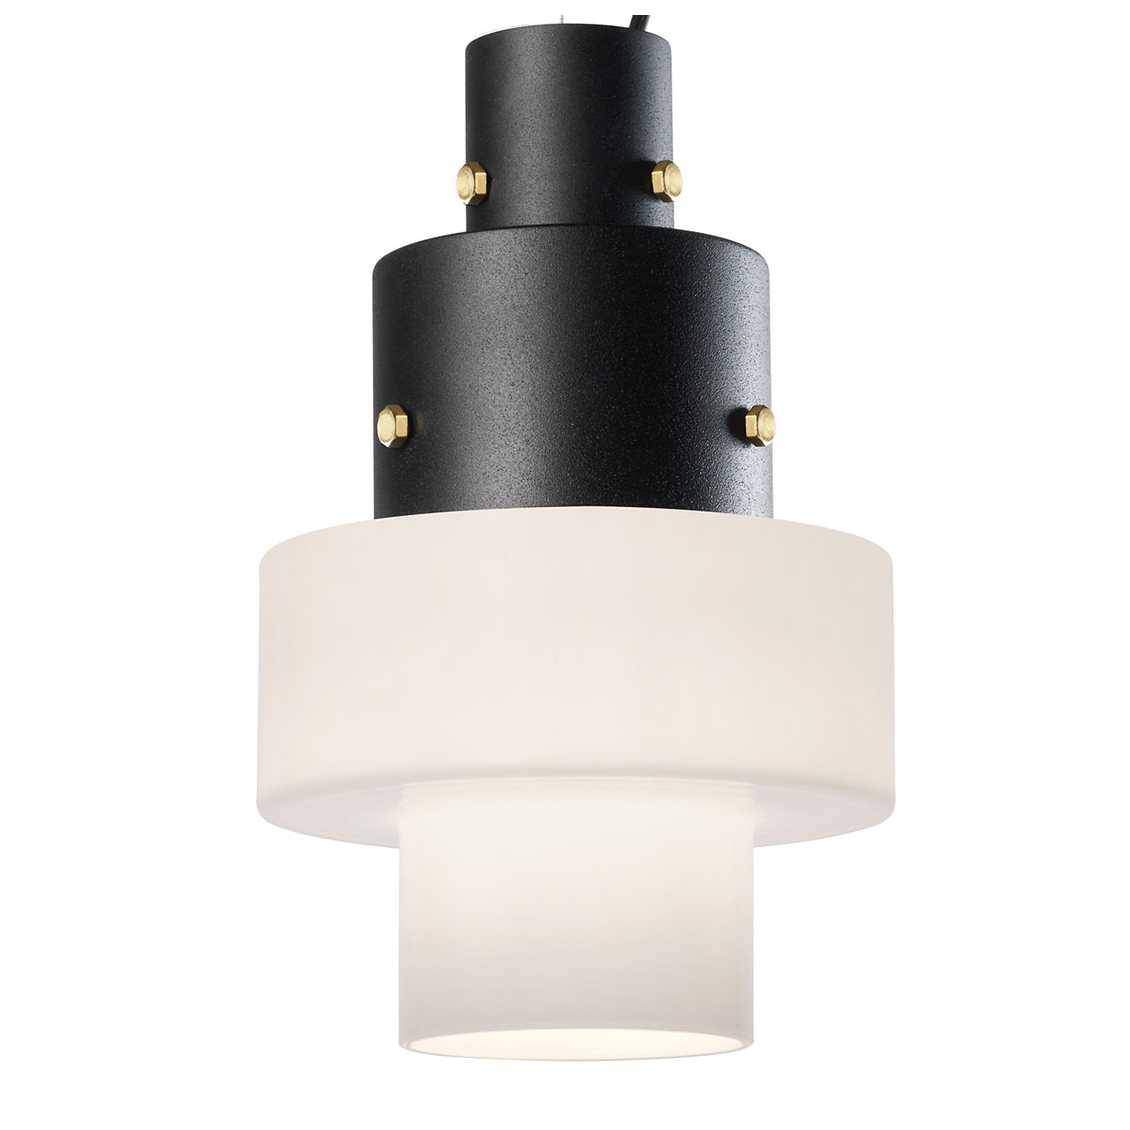 Diesel with Foscarini Gask hanglamp WitWoonkamer